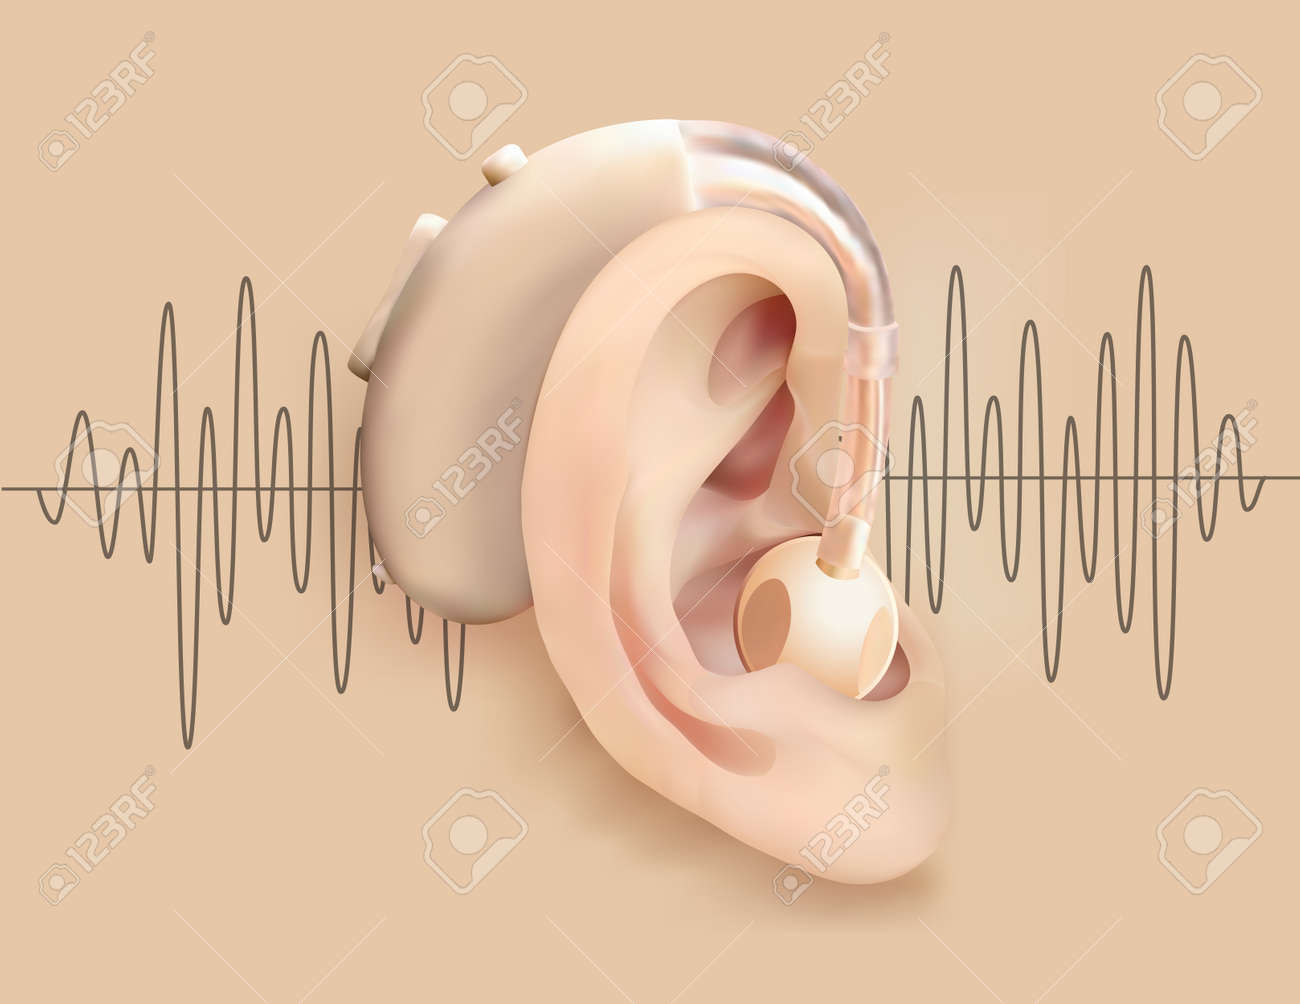 Illustration of a hearing aid behind ear on a background of sound wave pattern. - 97538485